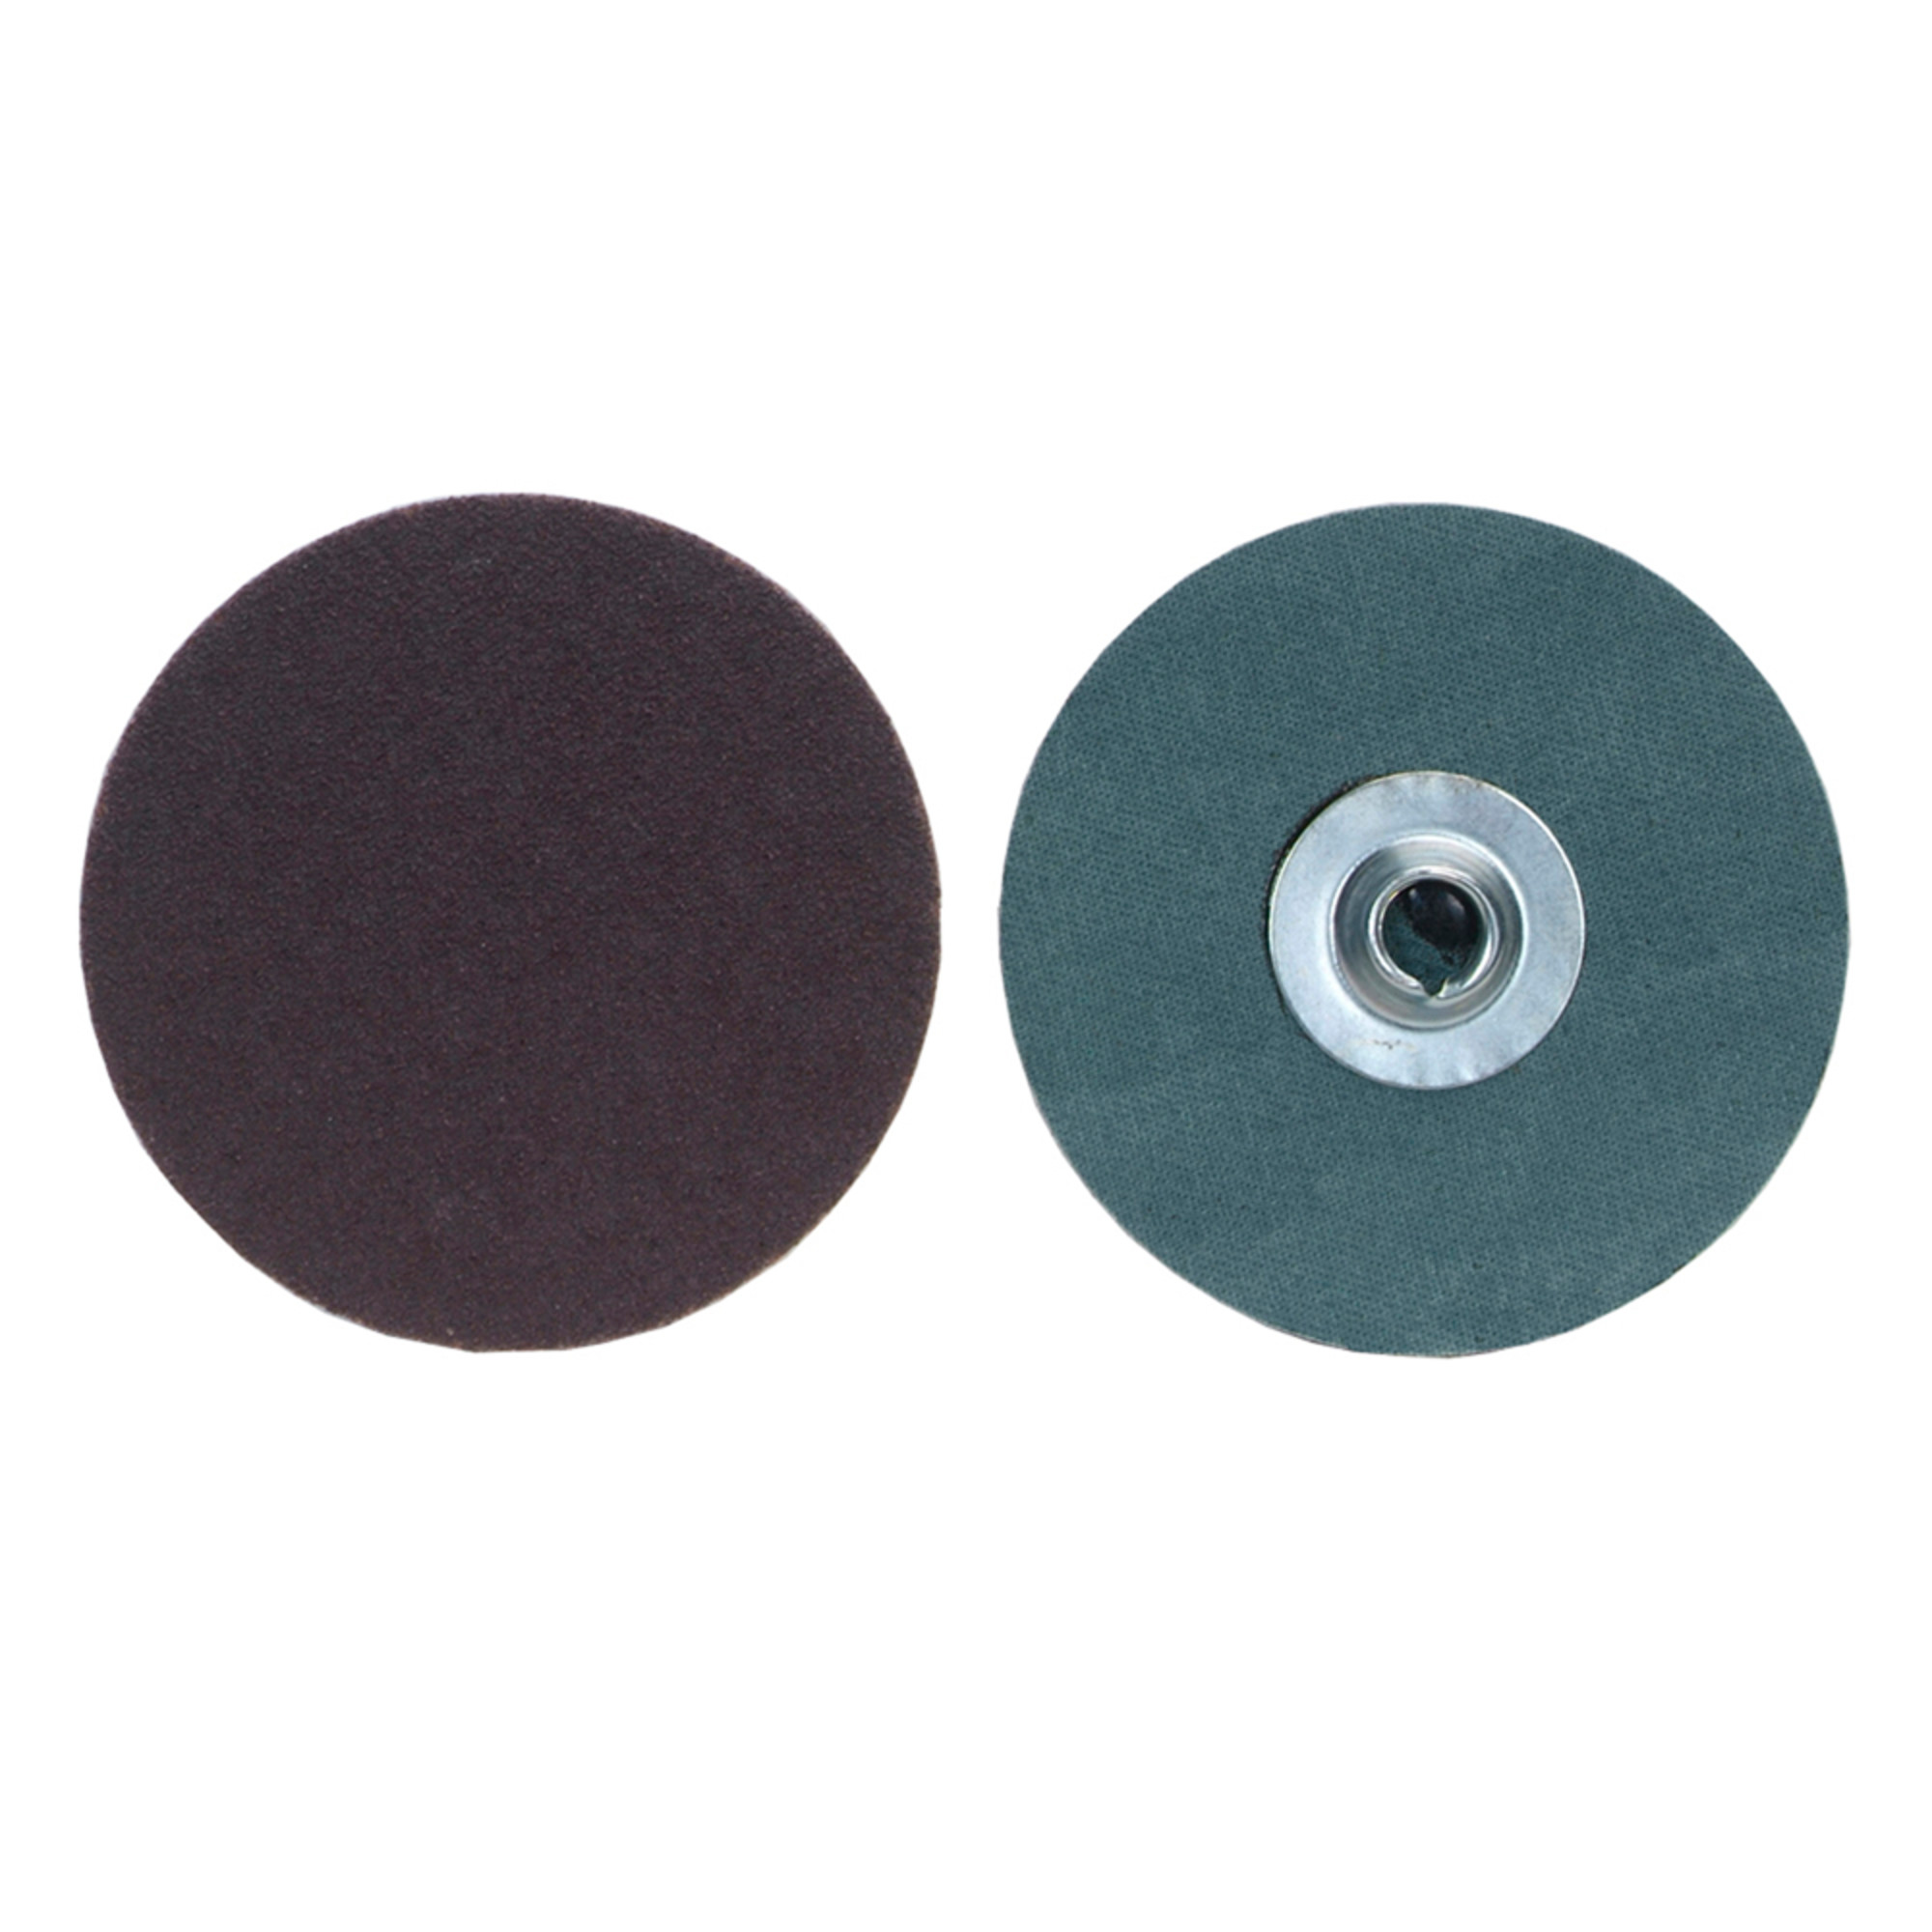 Norton 08834168486 Power Sander Quick Change Discs Size 1 320 Grit